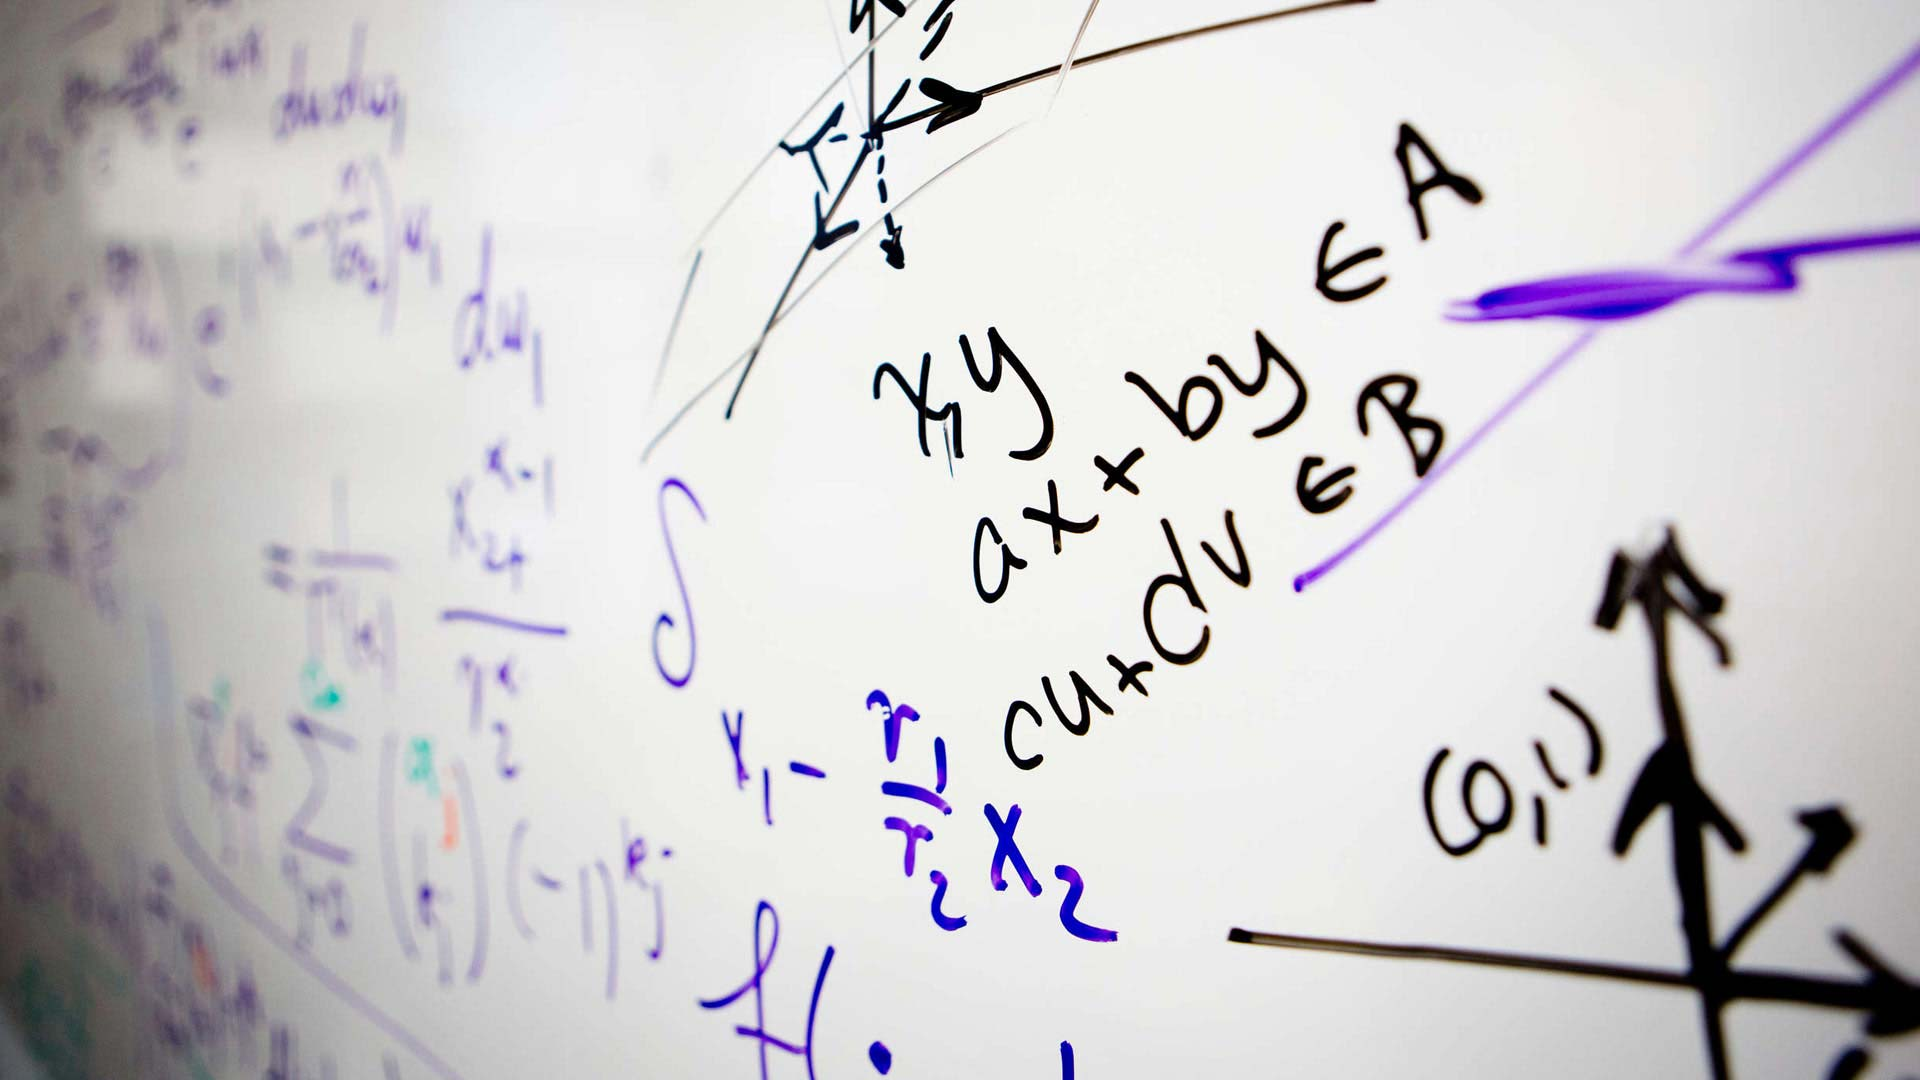 Mathematical equations on a whiteboard.